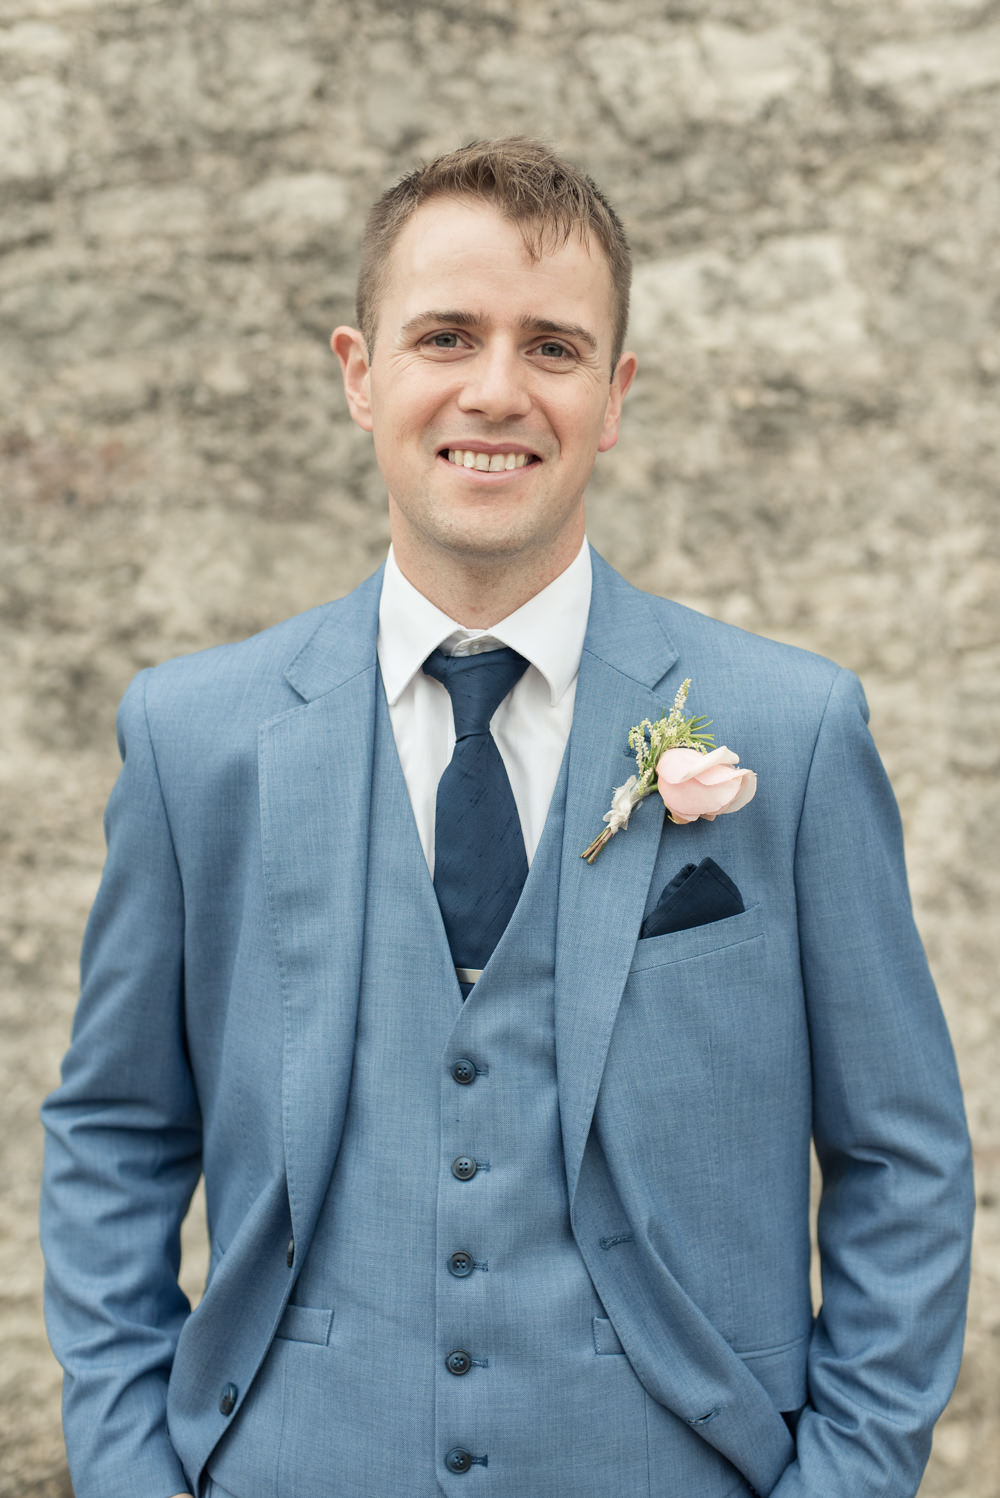 Groom Pale Blue Suit Tie Navy Buttonhole Tythe Barn Priston Mill Wedding Eleanor Jane Photography